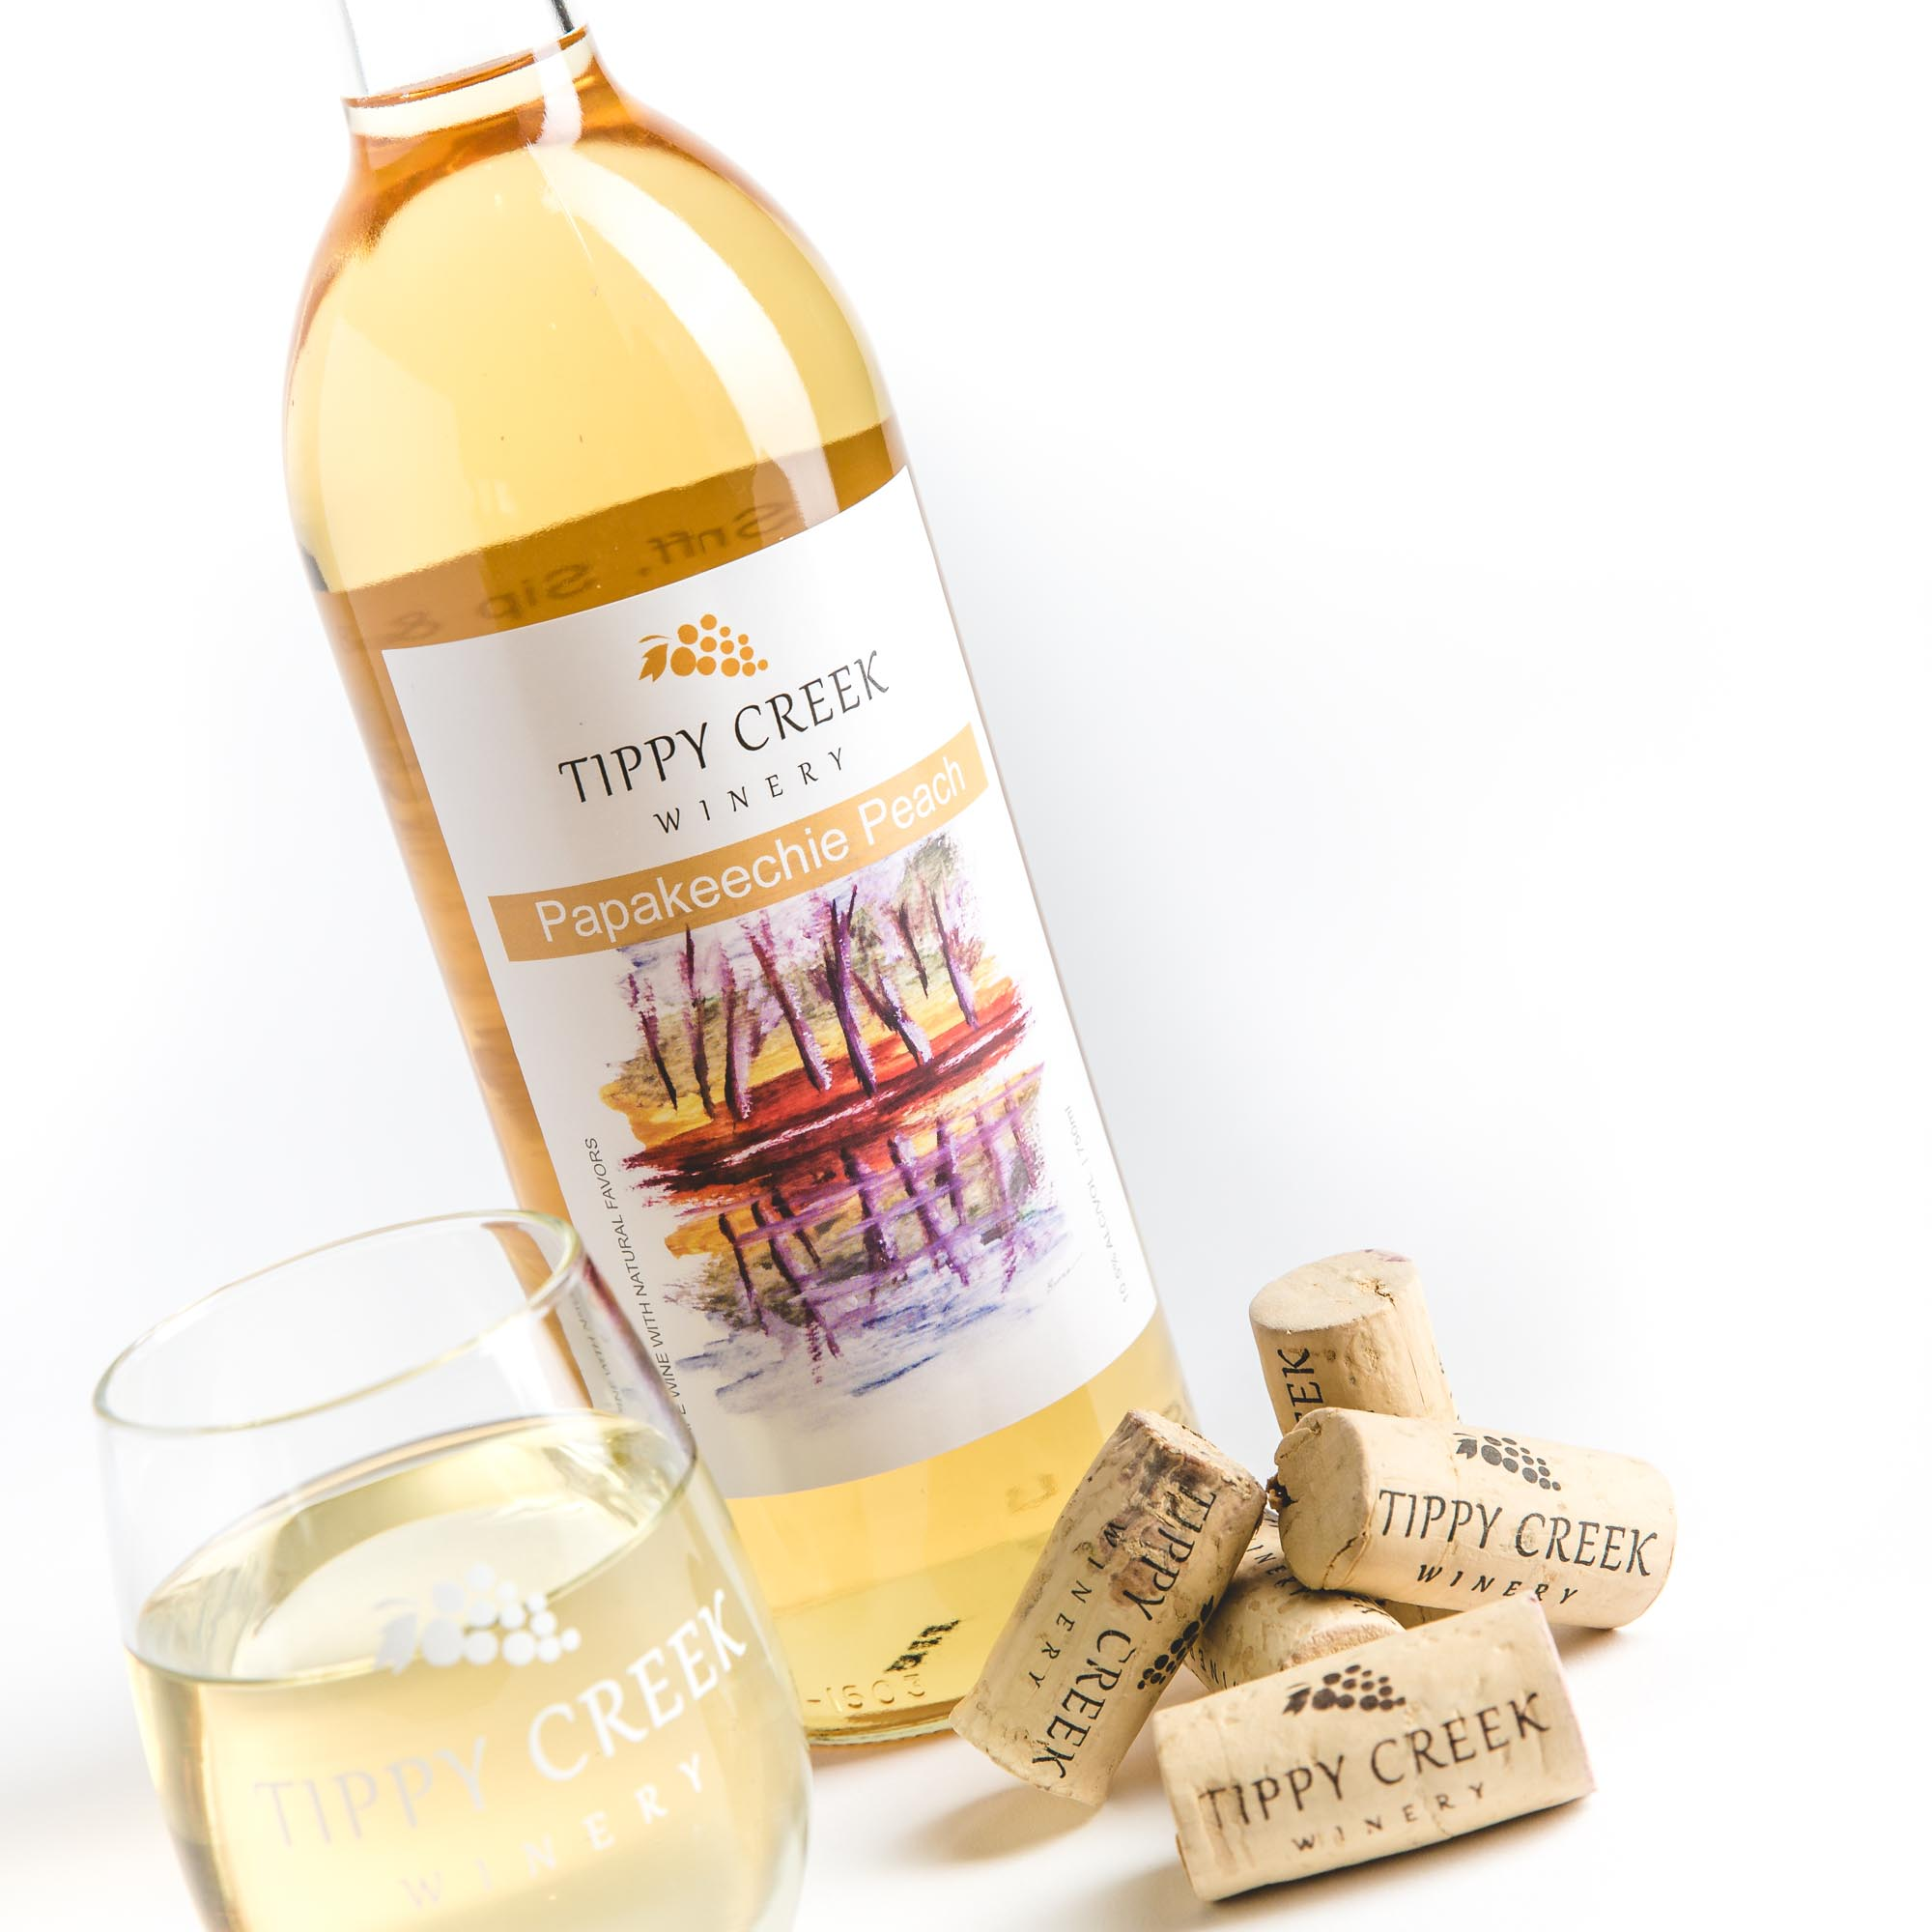 Papakeechie Peach White Wine Tippy Creek Winery